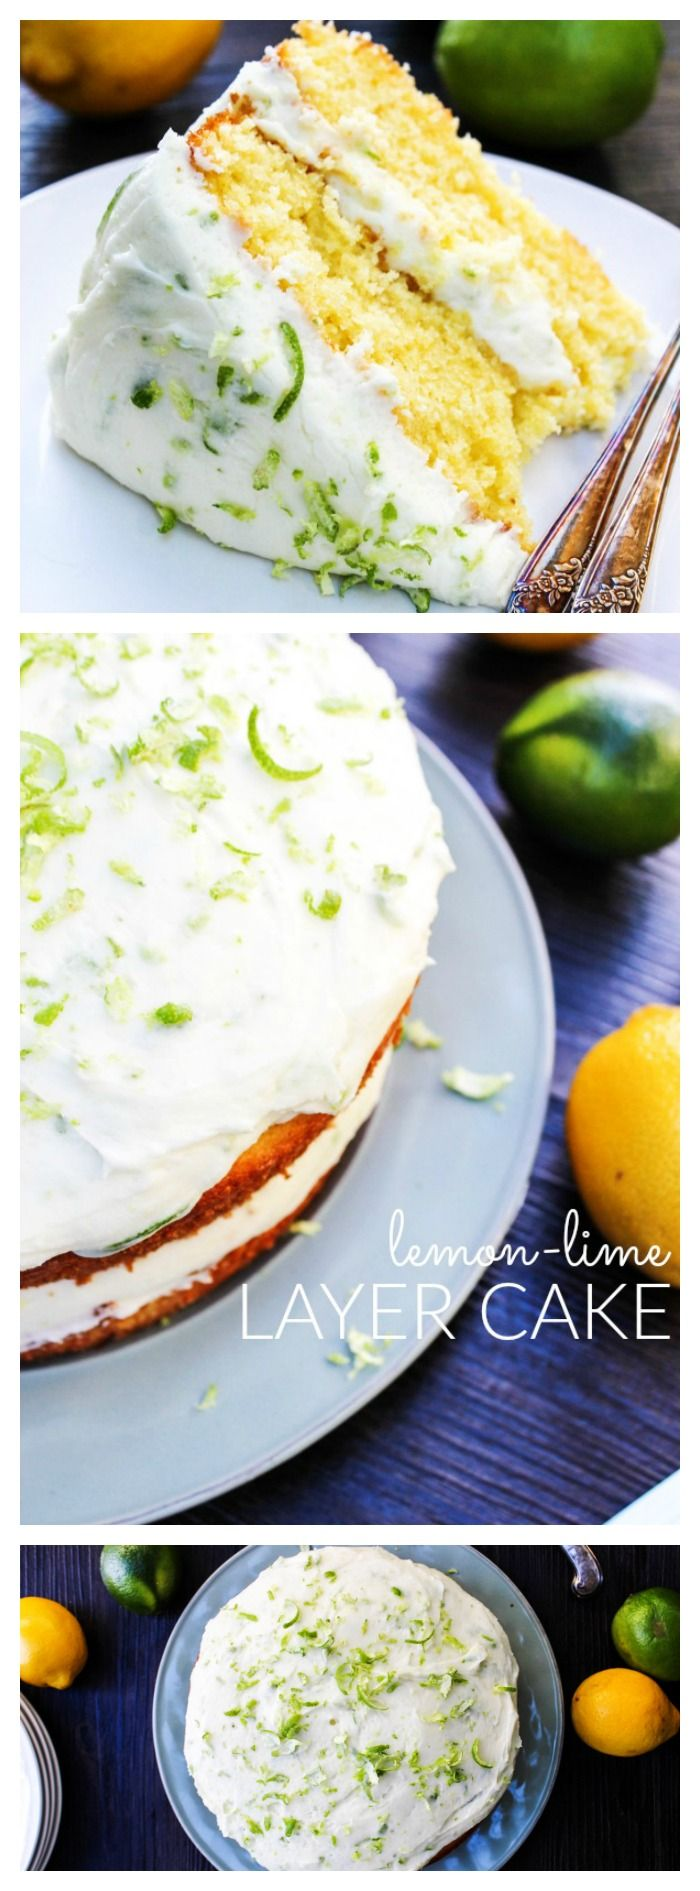 Lemon-Lime Layer Cake - LONG PIN